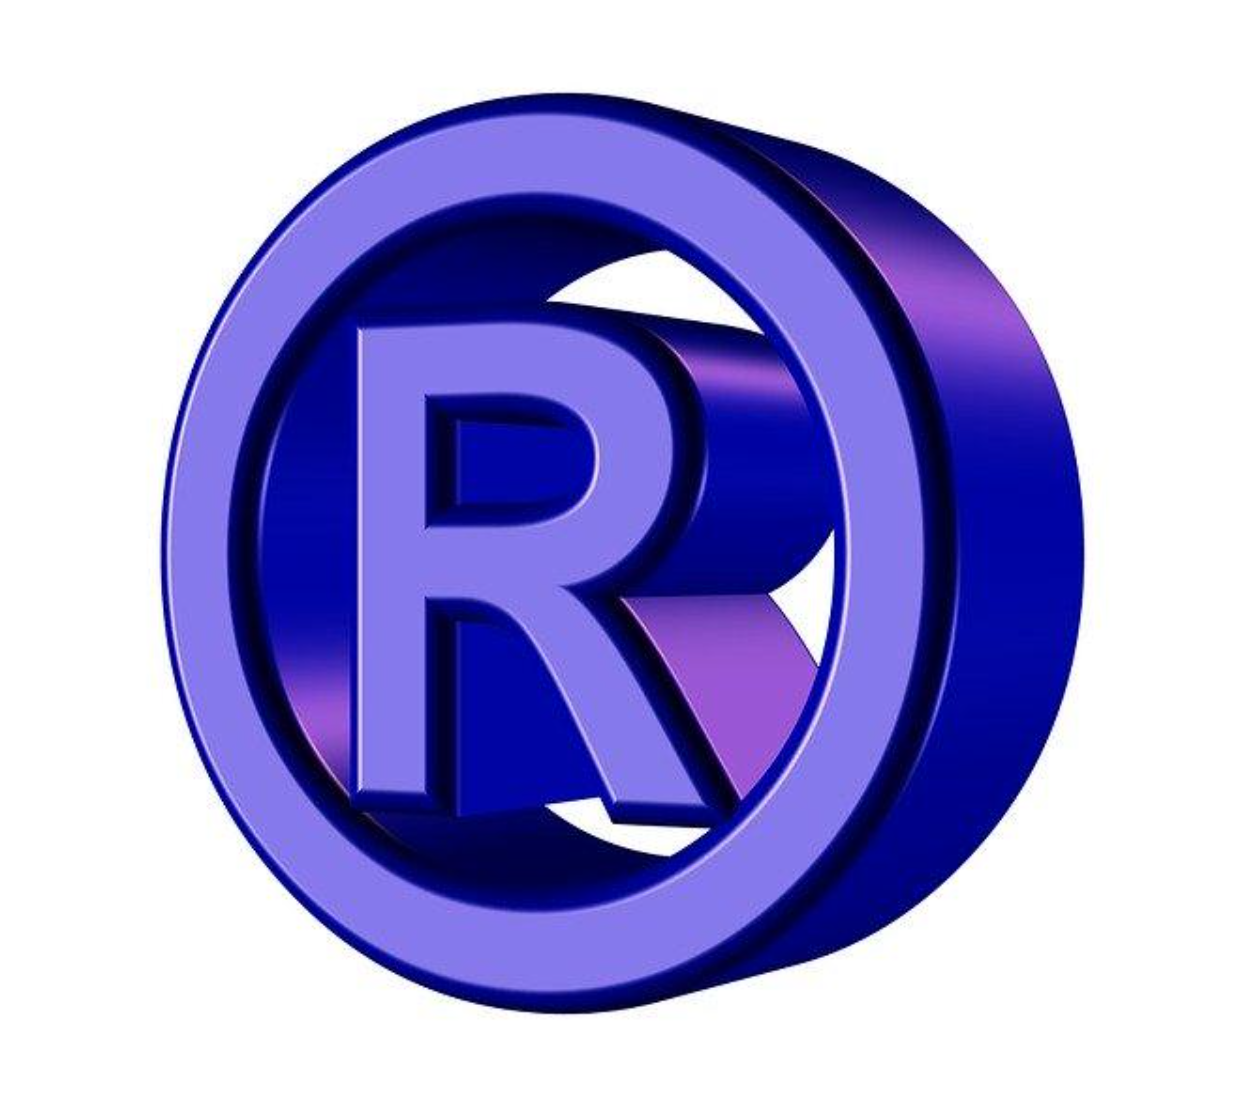 Registered trademark symbol; image by TheDigitalArtist, via Pixabay.com.